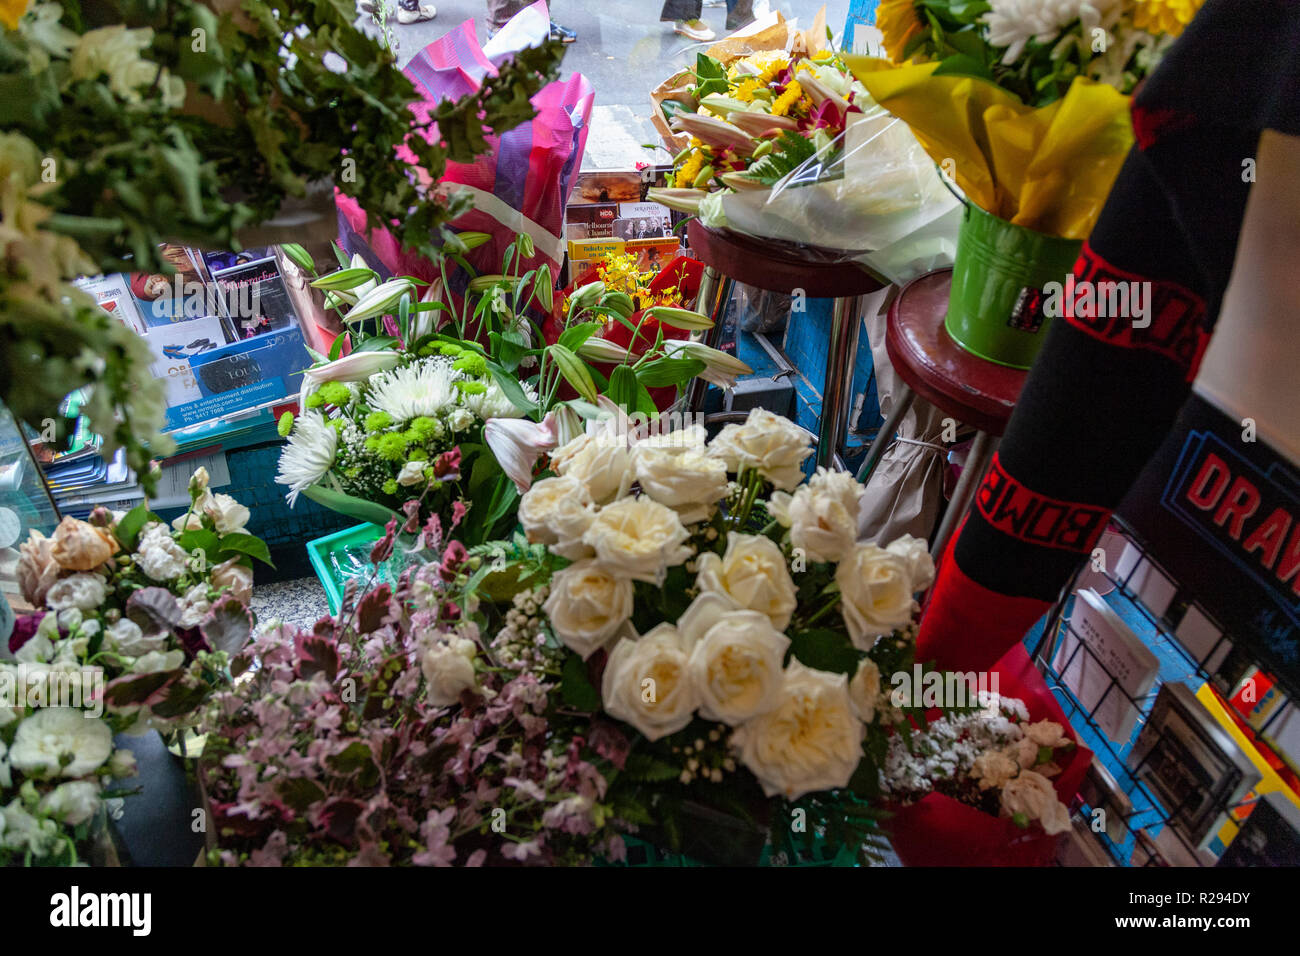 RIP Sisto Malaspina victim of alleged terrorist attack - Stock Image